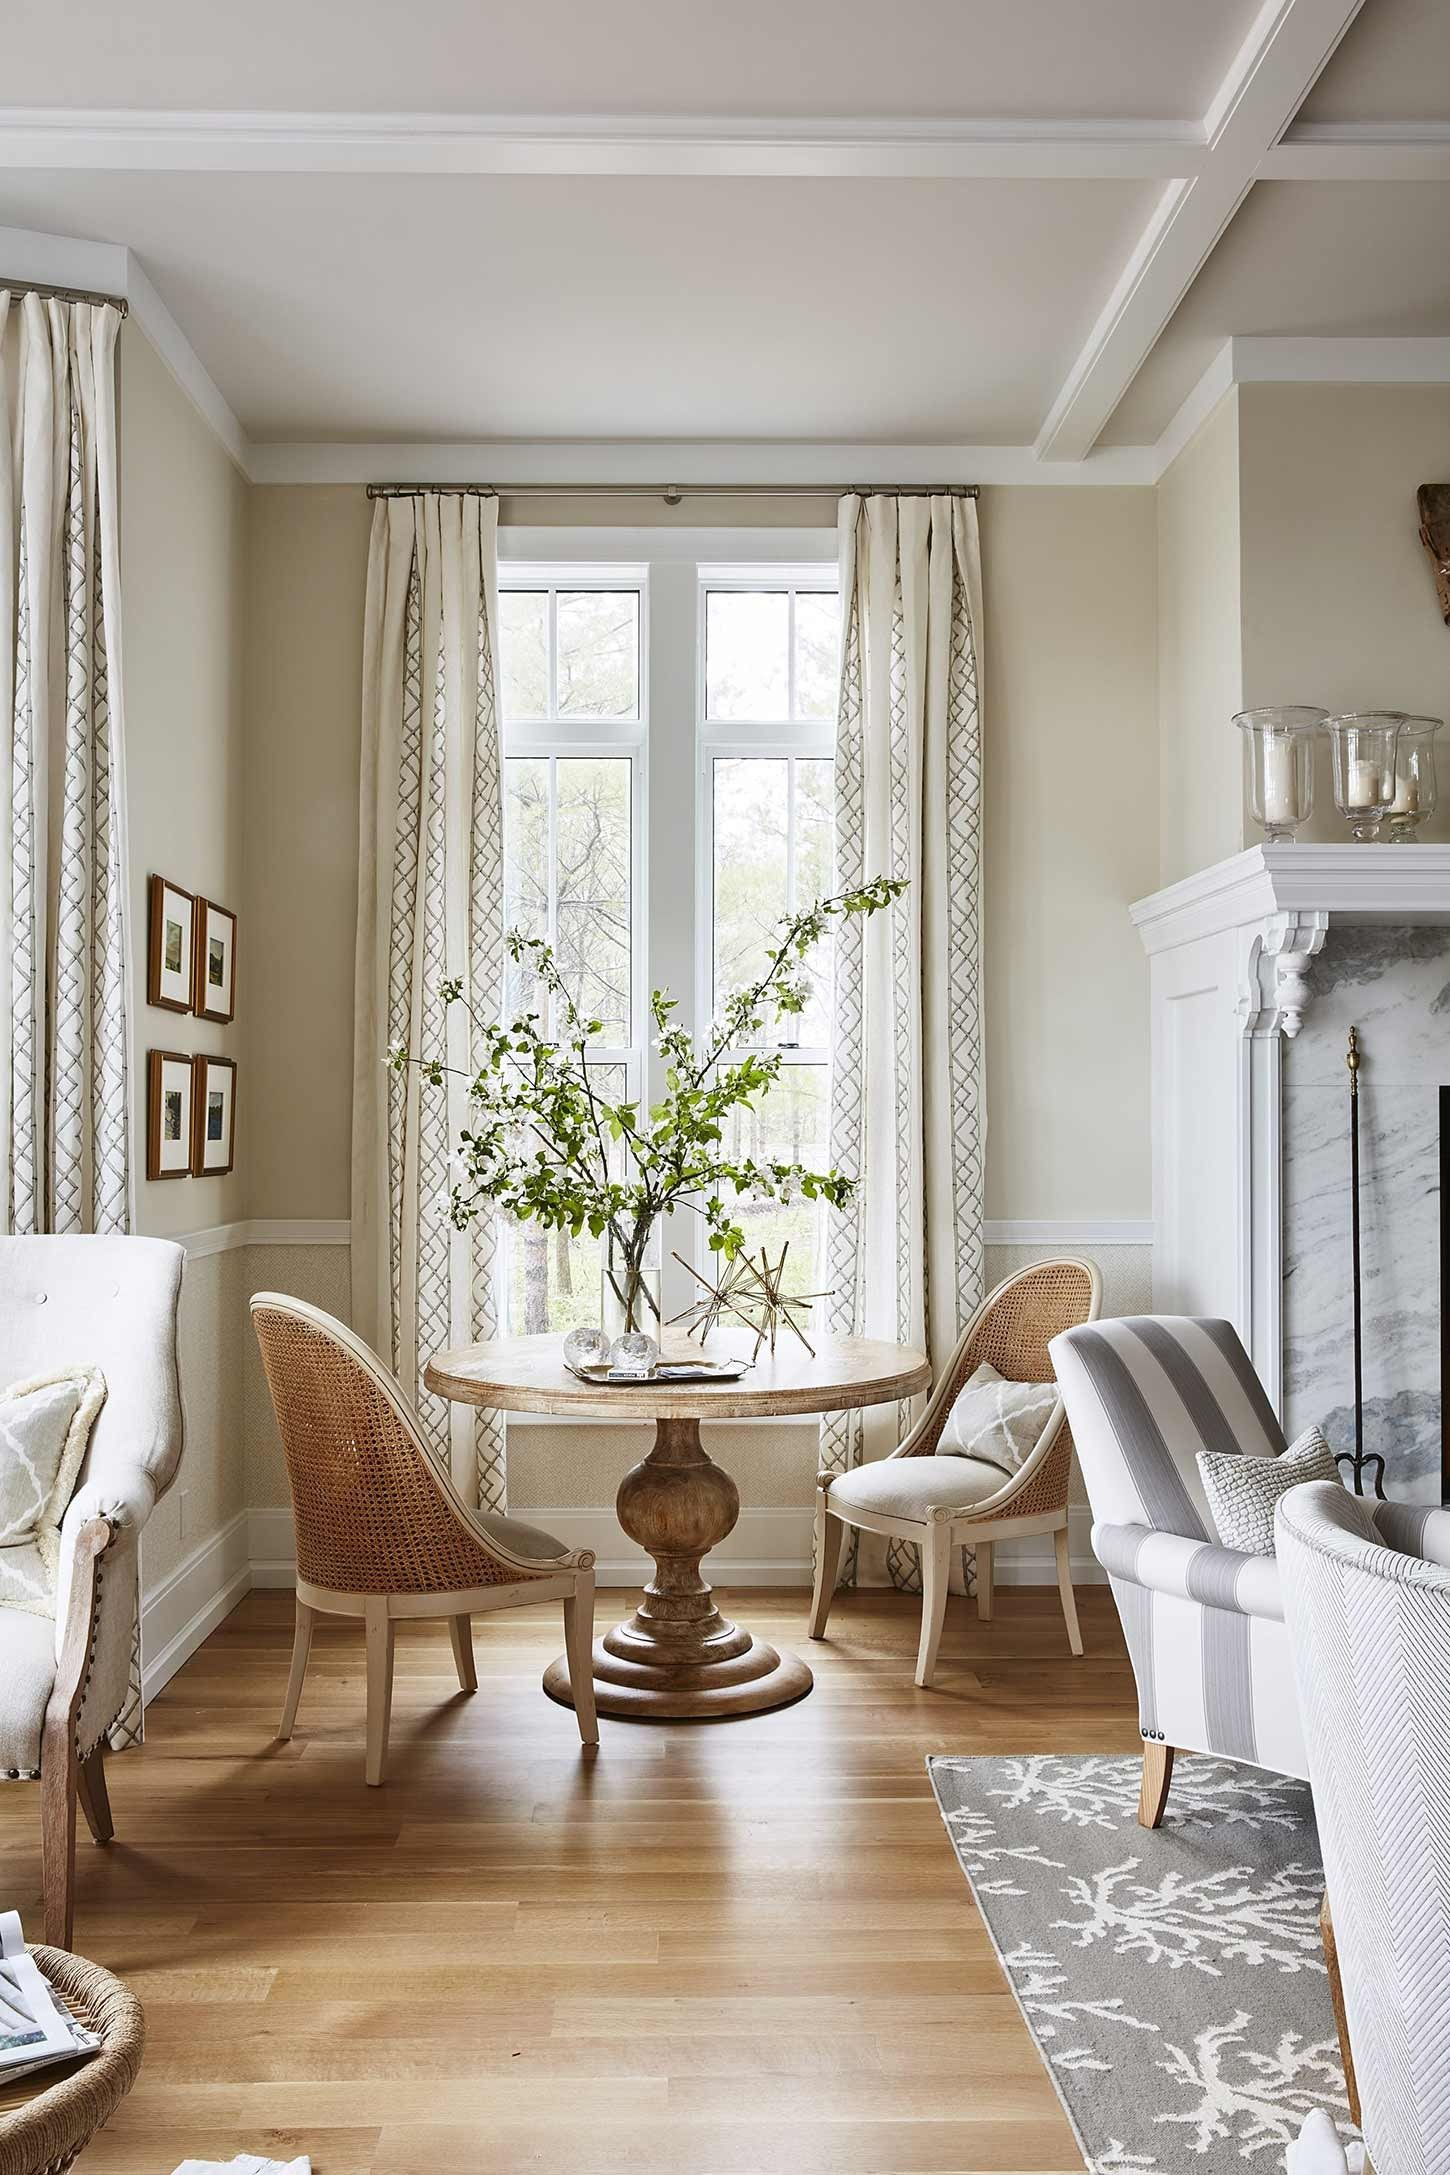 Recipes From The Living Room 2019 In 2020 Classic Living Room Living Room Wood Floor Living Room Decor Neutral